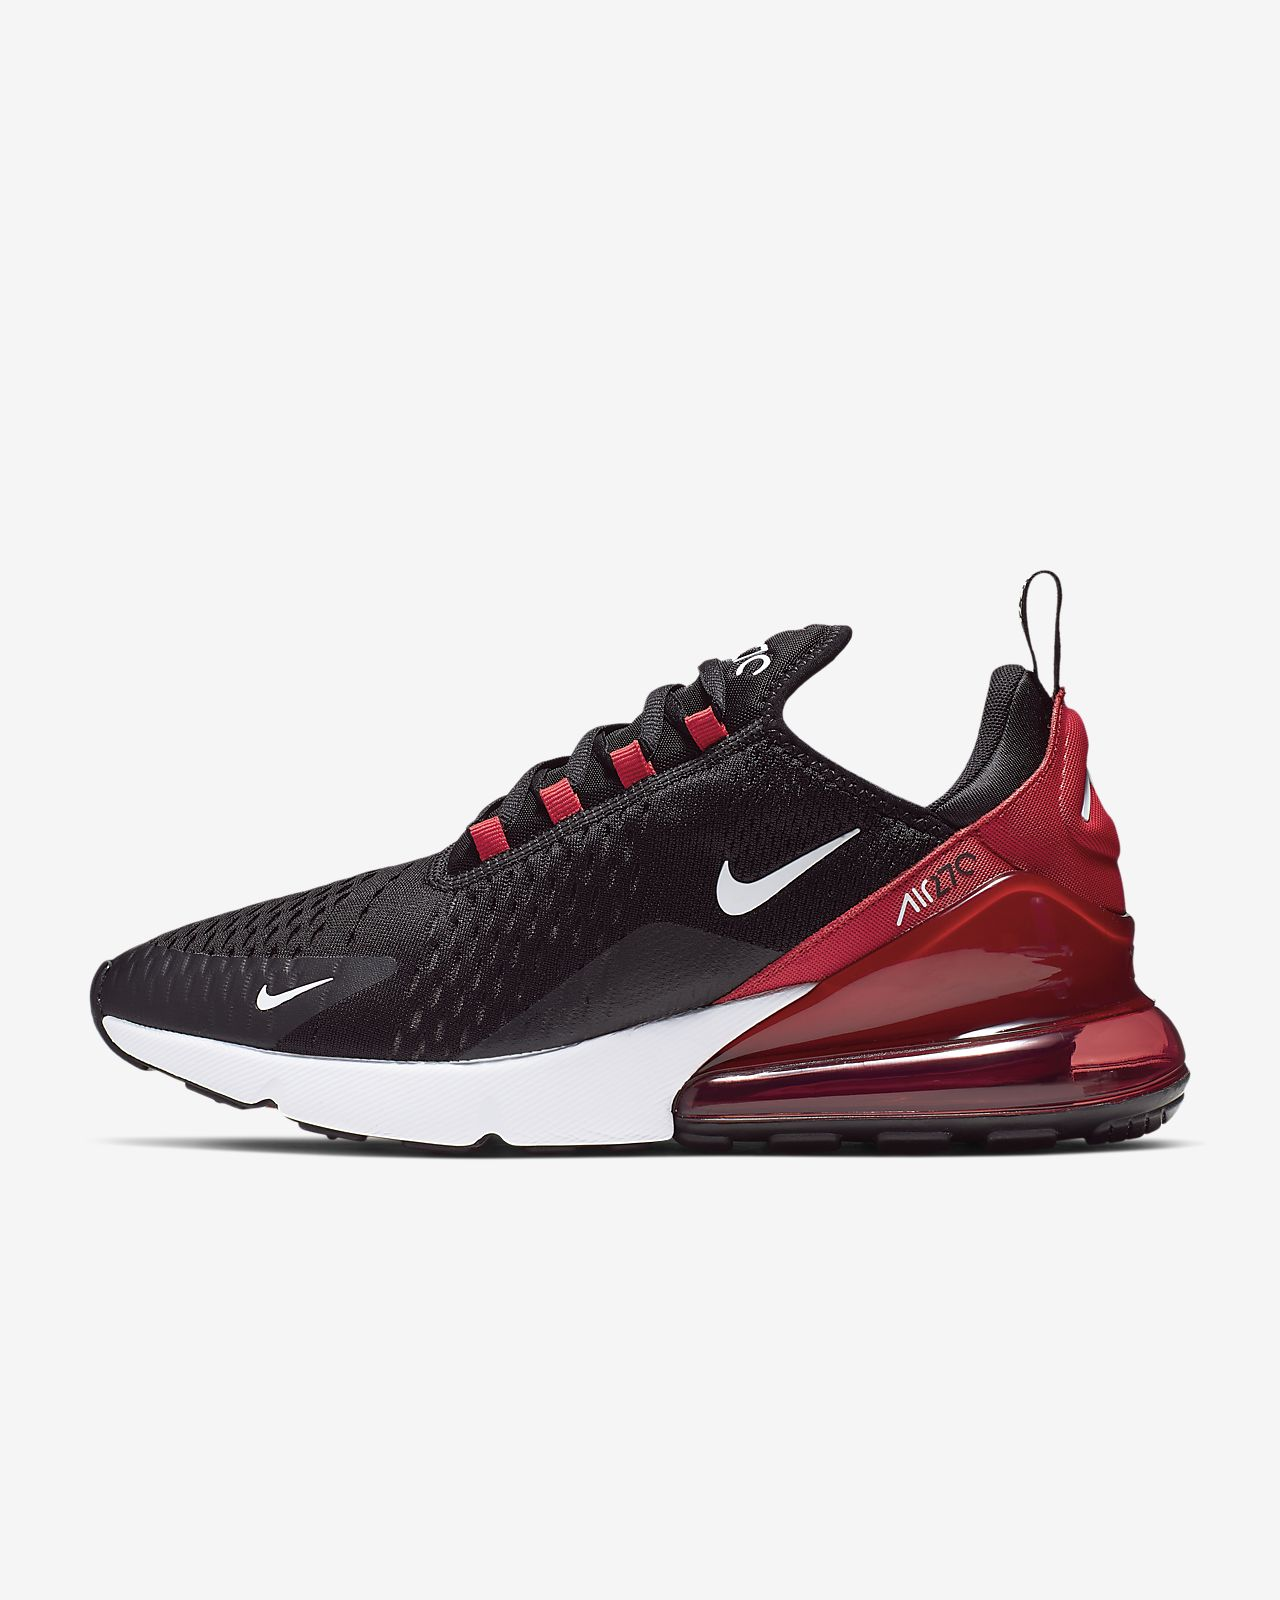 huge selection of d81e6 11c64 ... Sko Nike Air Max 270 för män